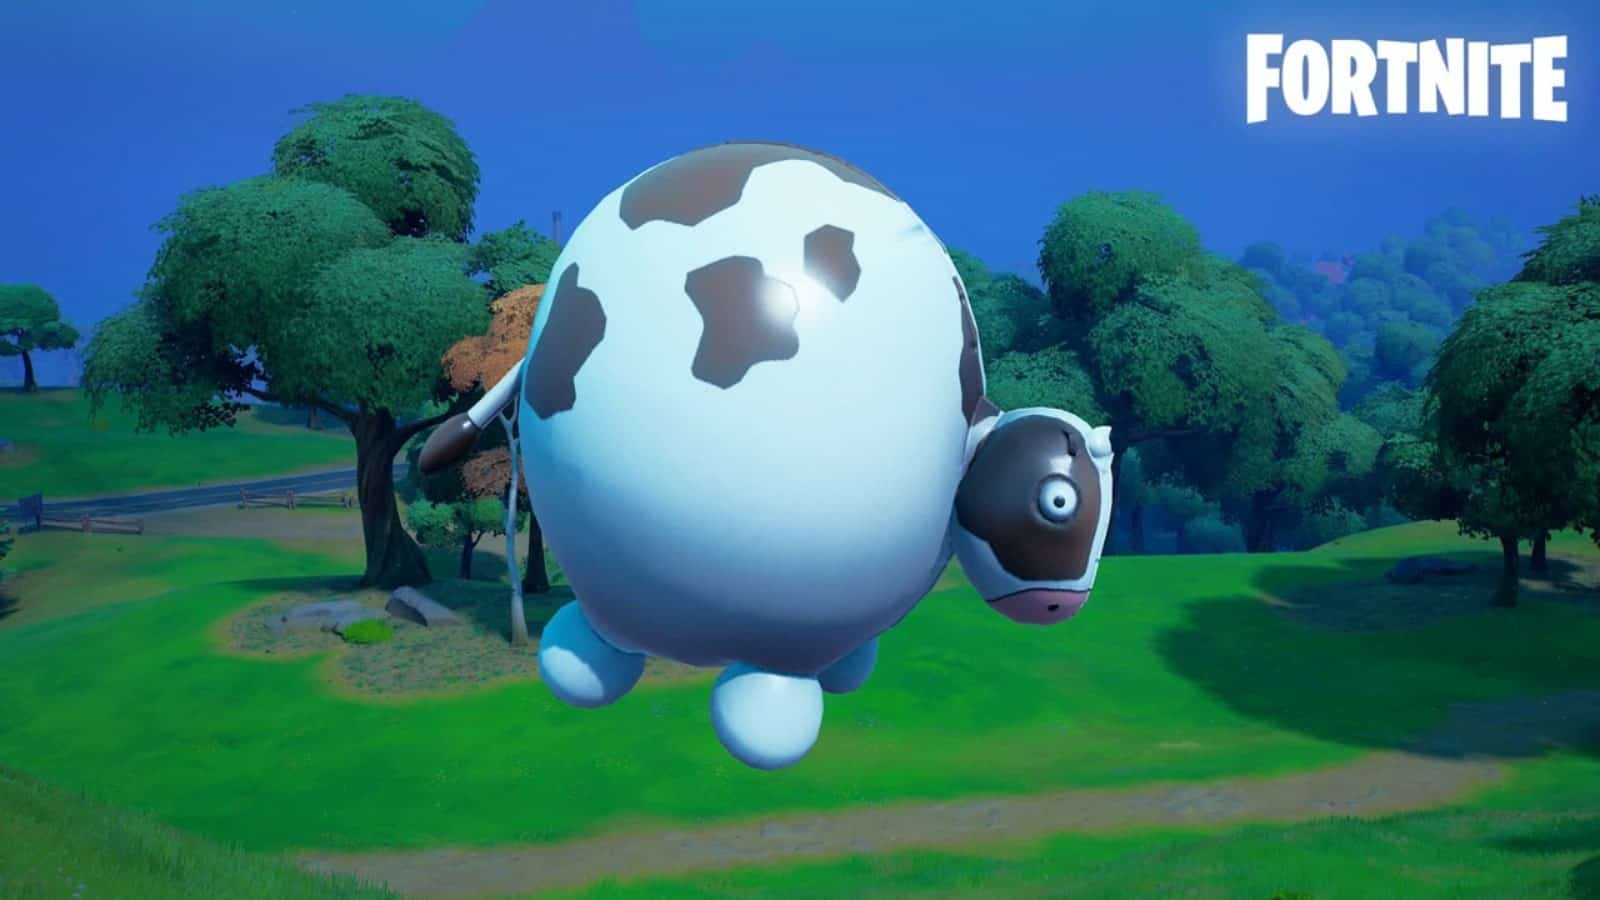 Fortnite Inflate-A-Bull: Where to Find and How To Use in Challenge